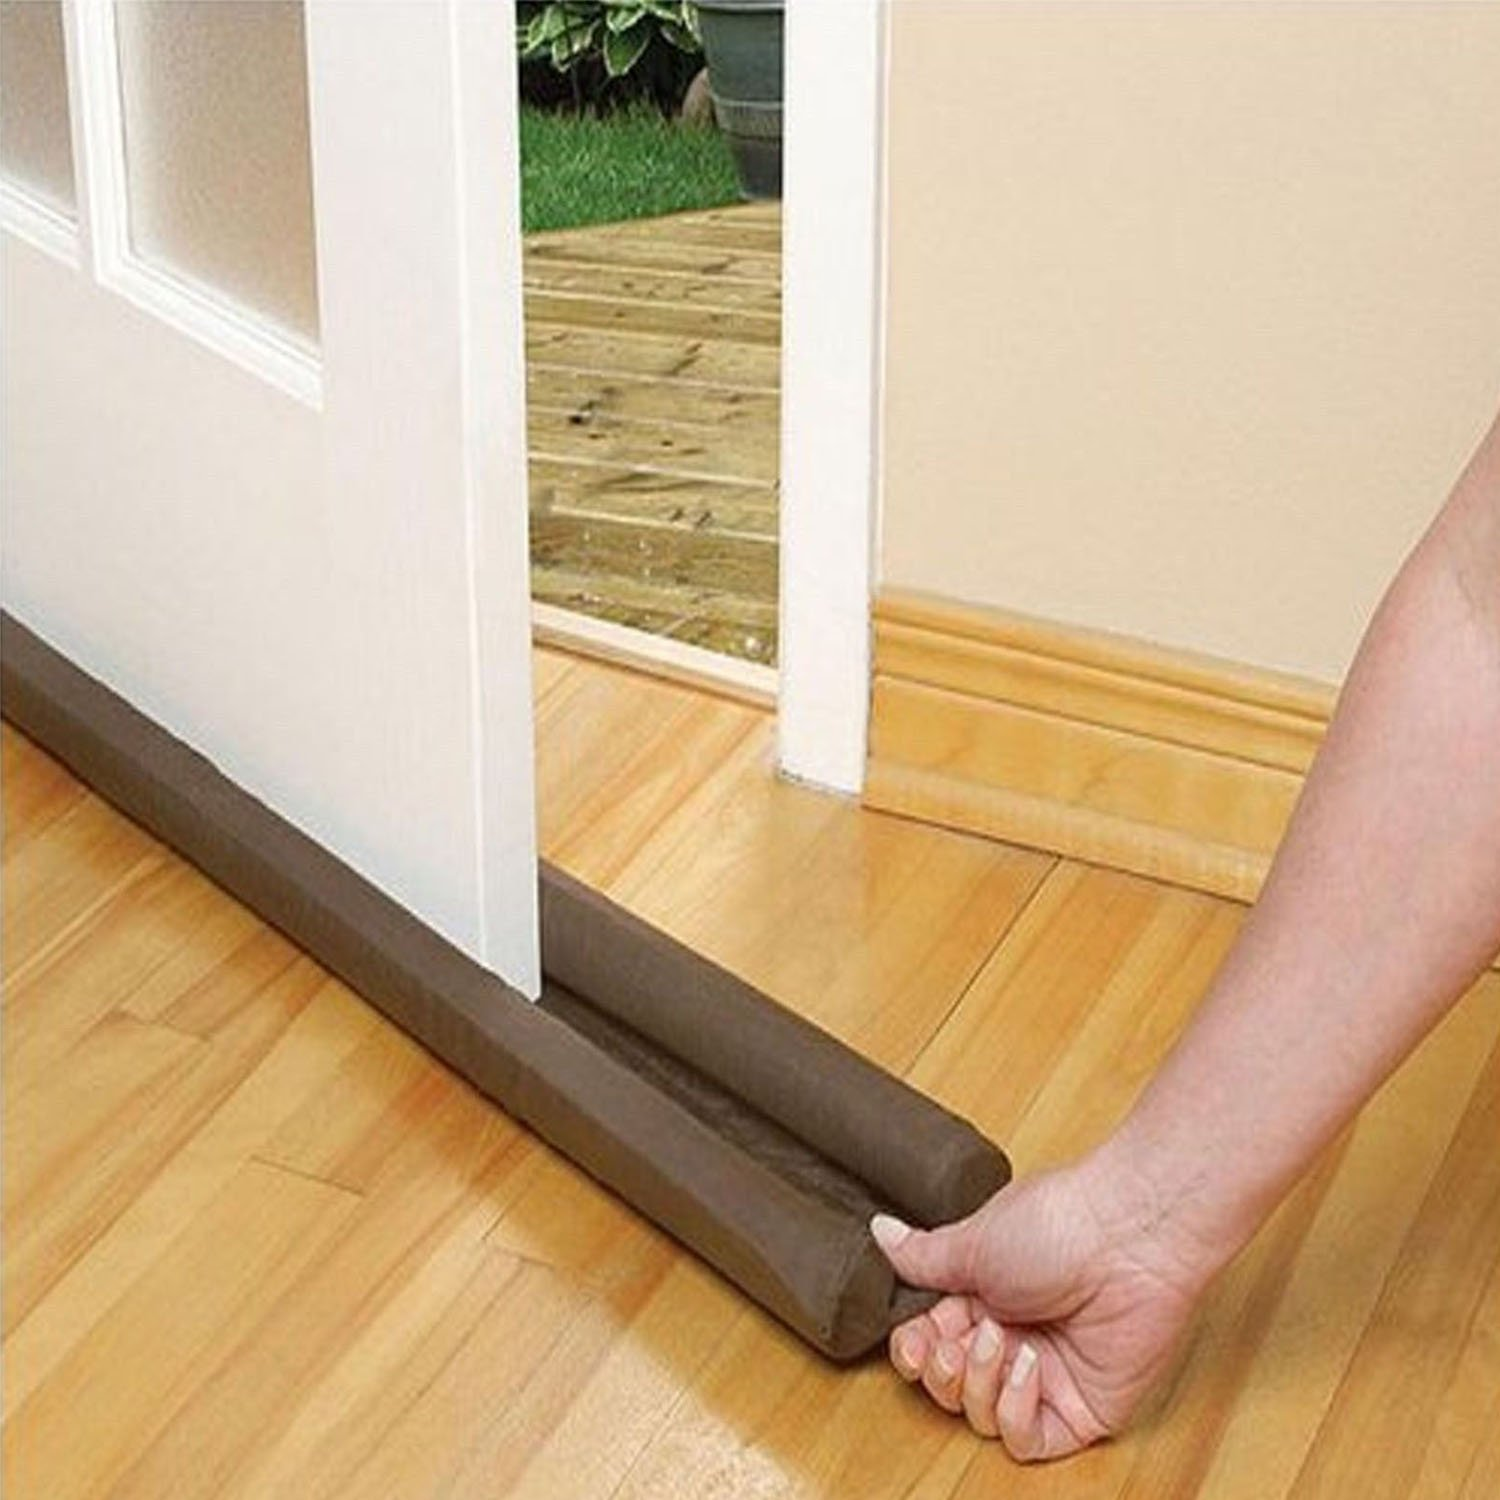 2 Pack Double Sided Twin Draft Guard Draught Excluder for Doors & Windows:  Amazon.co.uk: Kitchen & Home